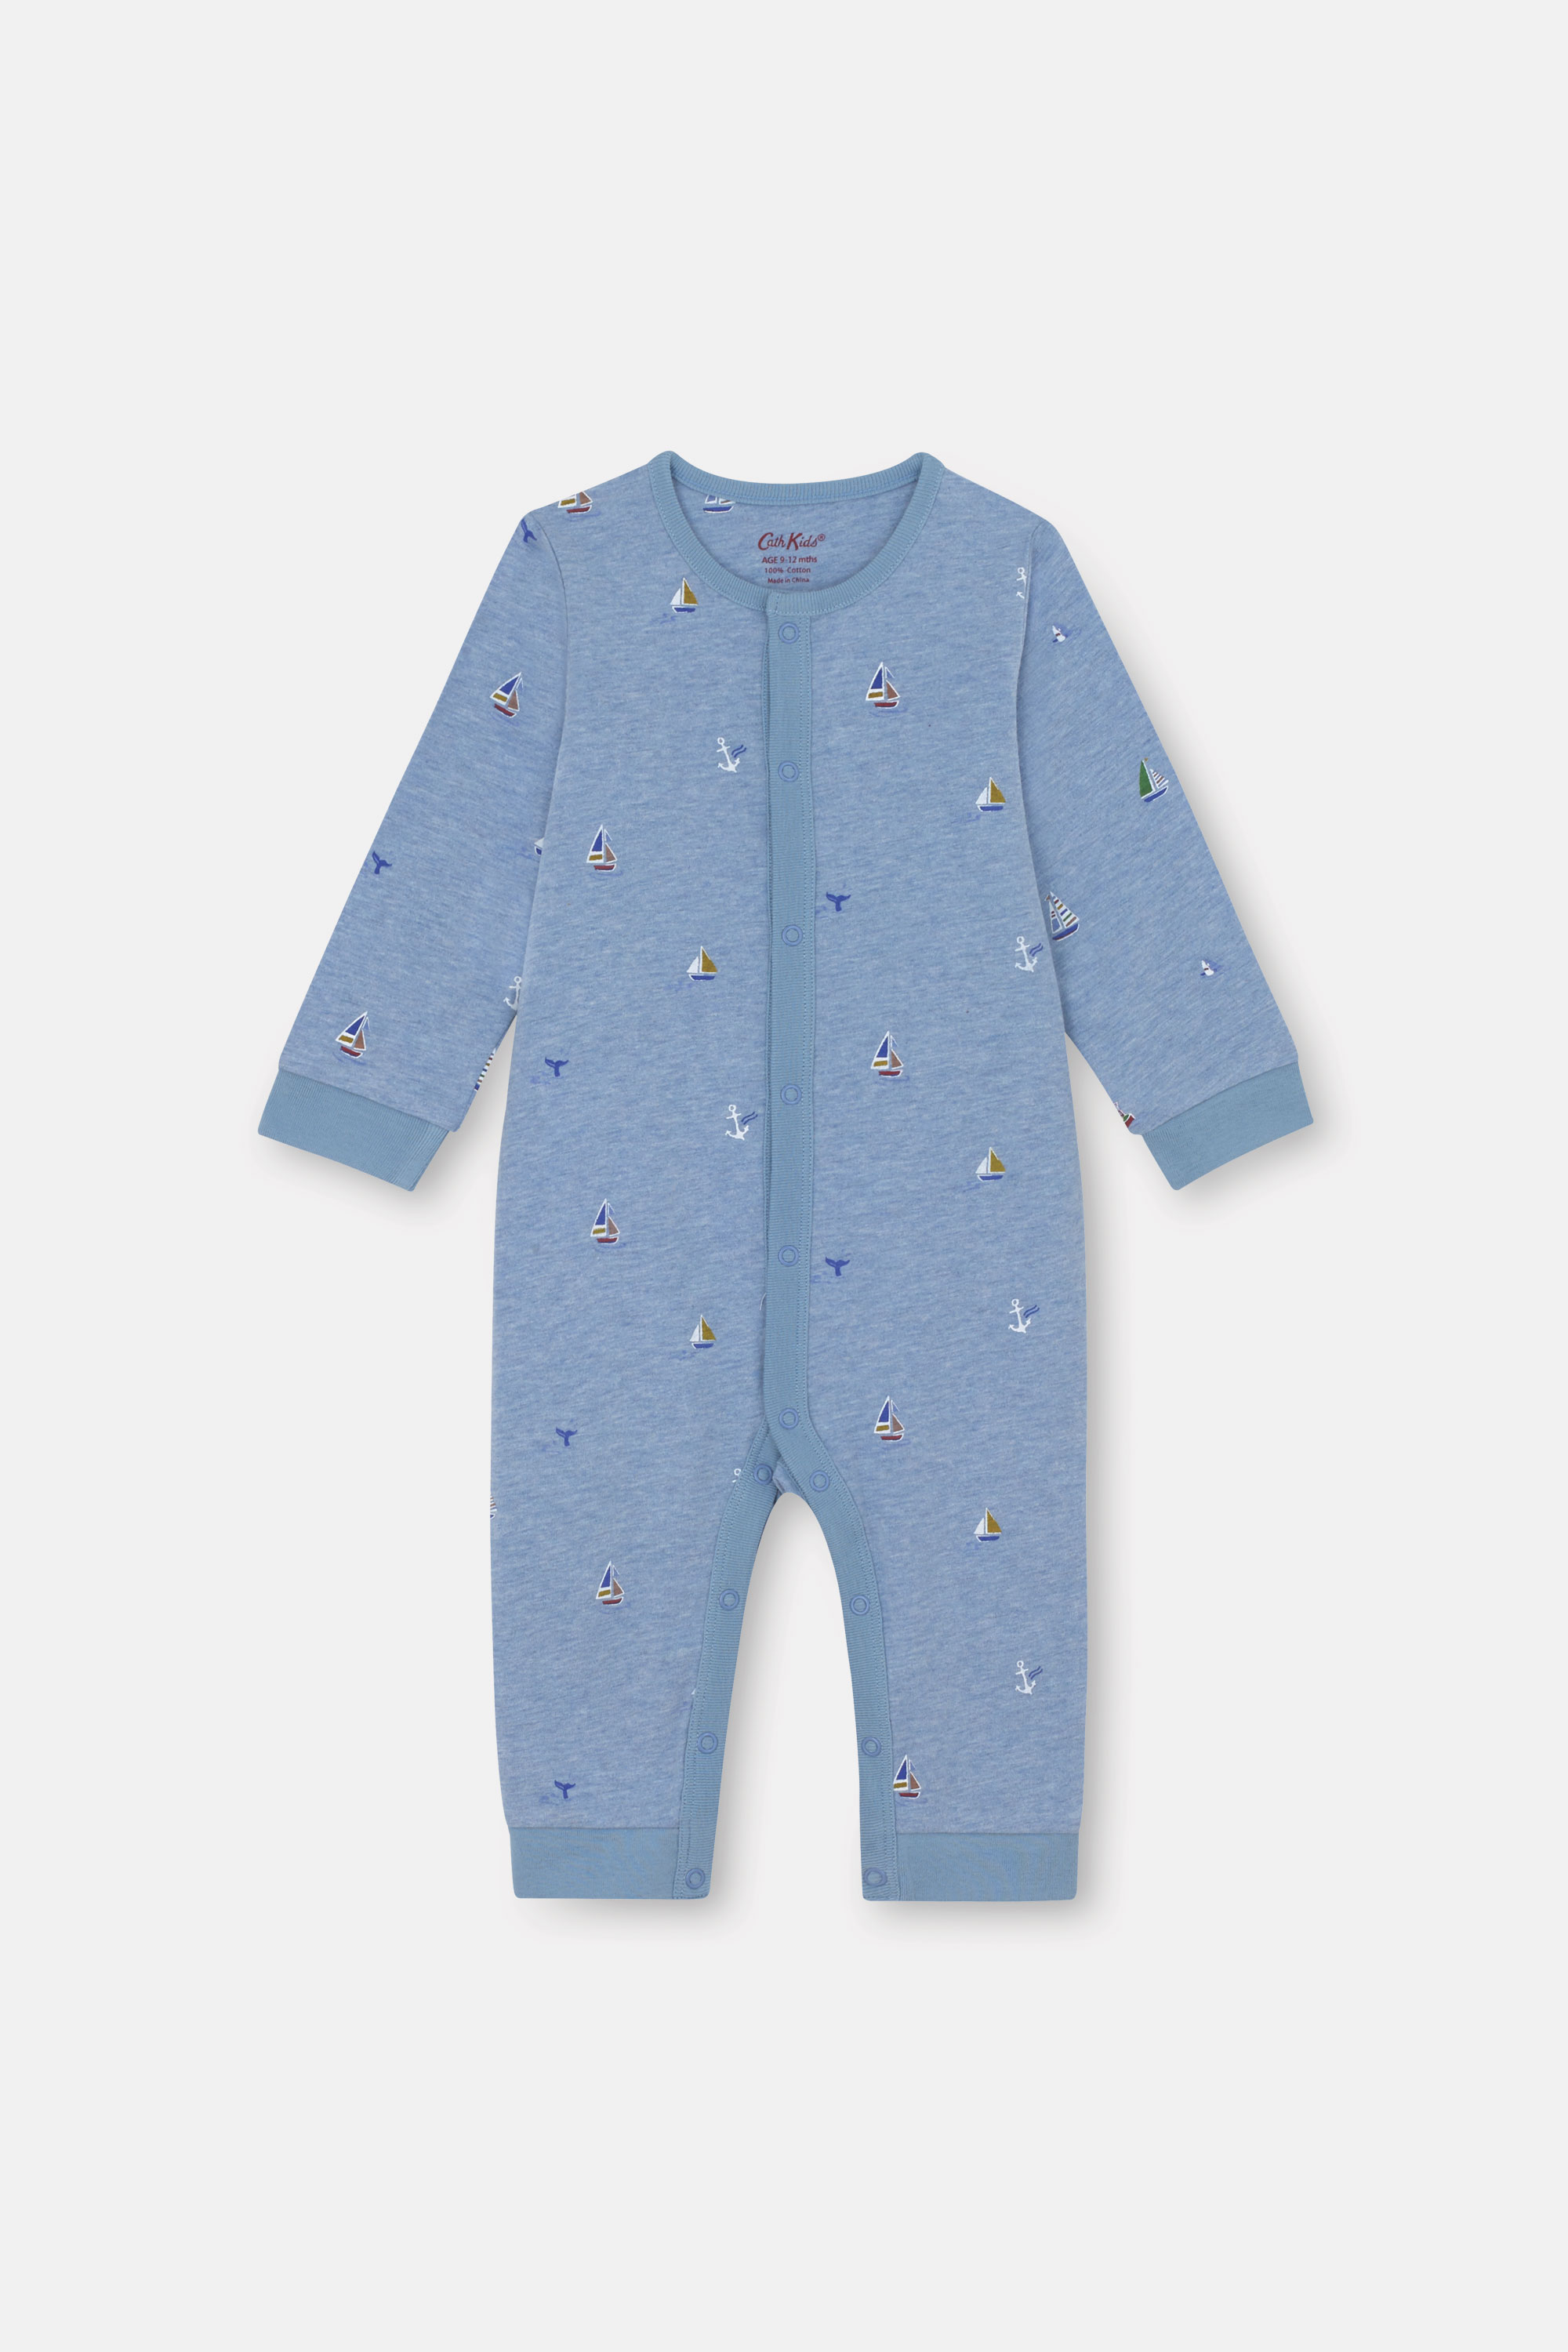 Cath Kidston Small Sail Boats Footless Sleepsuit in Blue Marl, 3-6 Mo